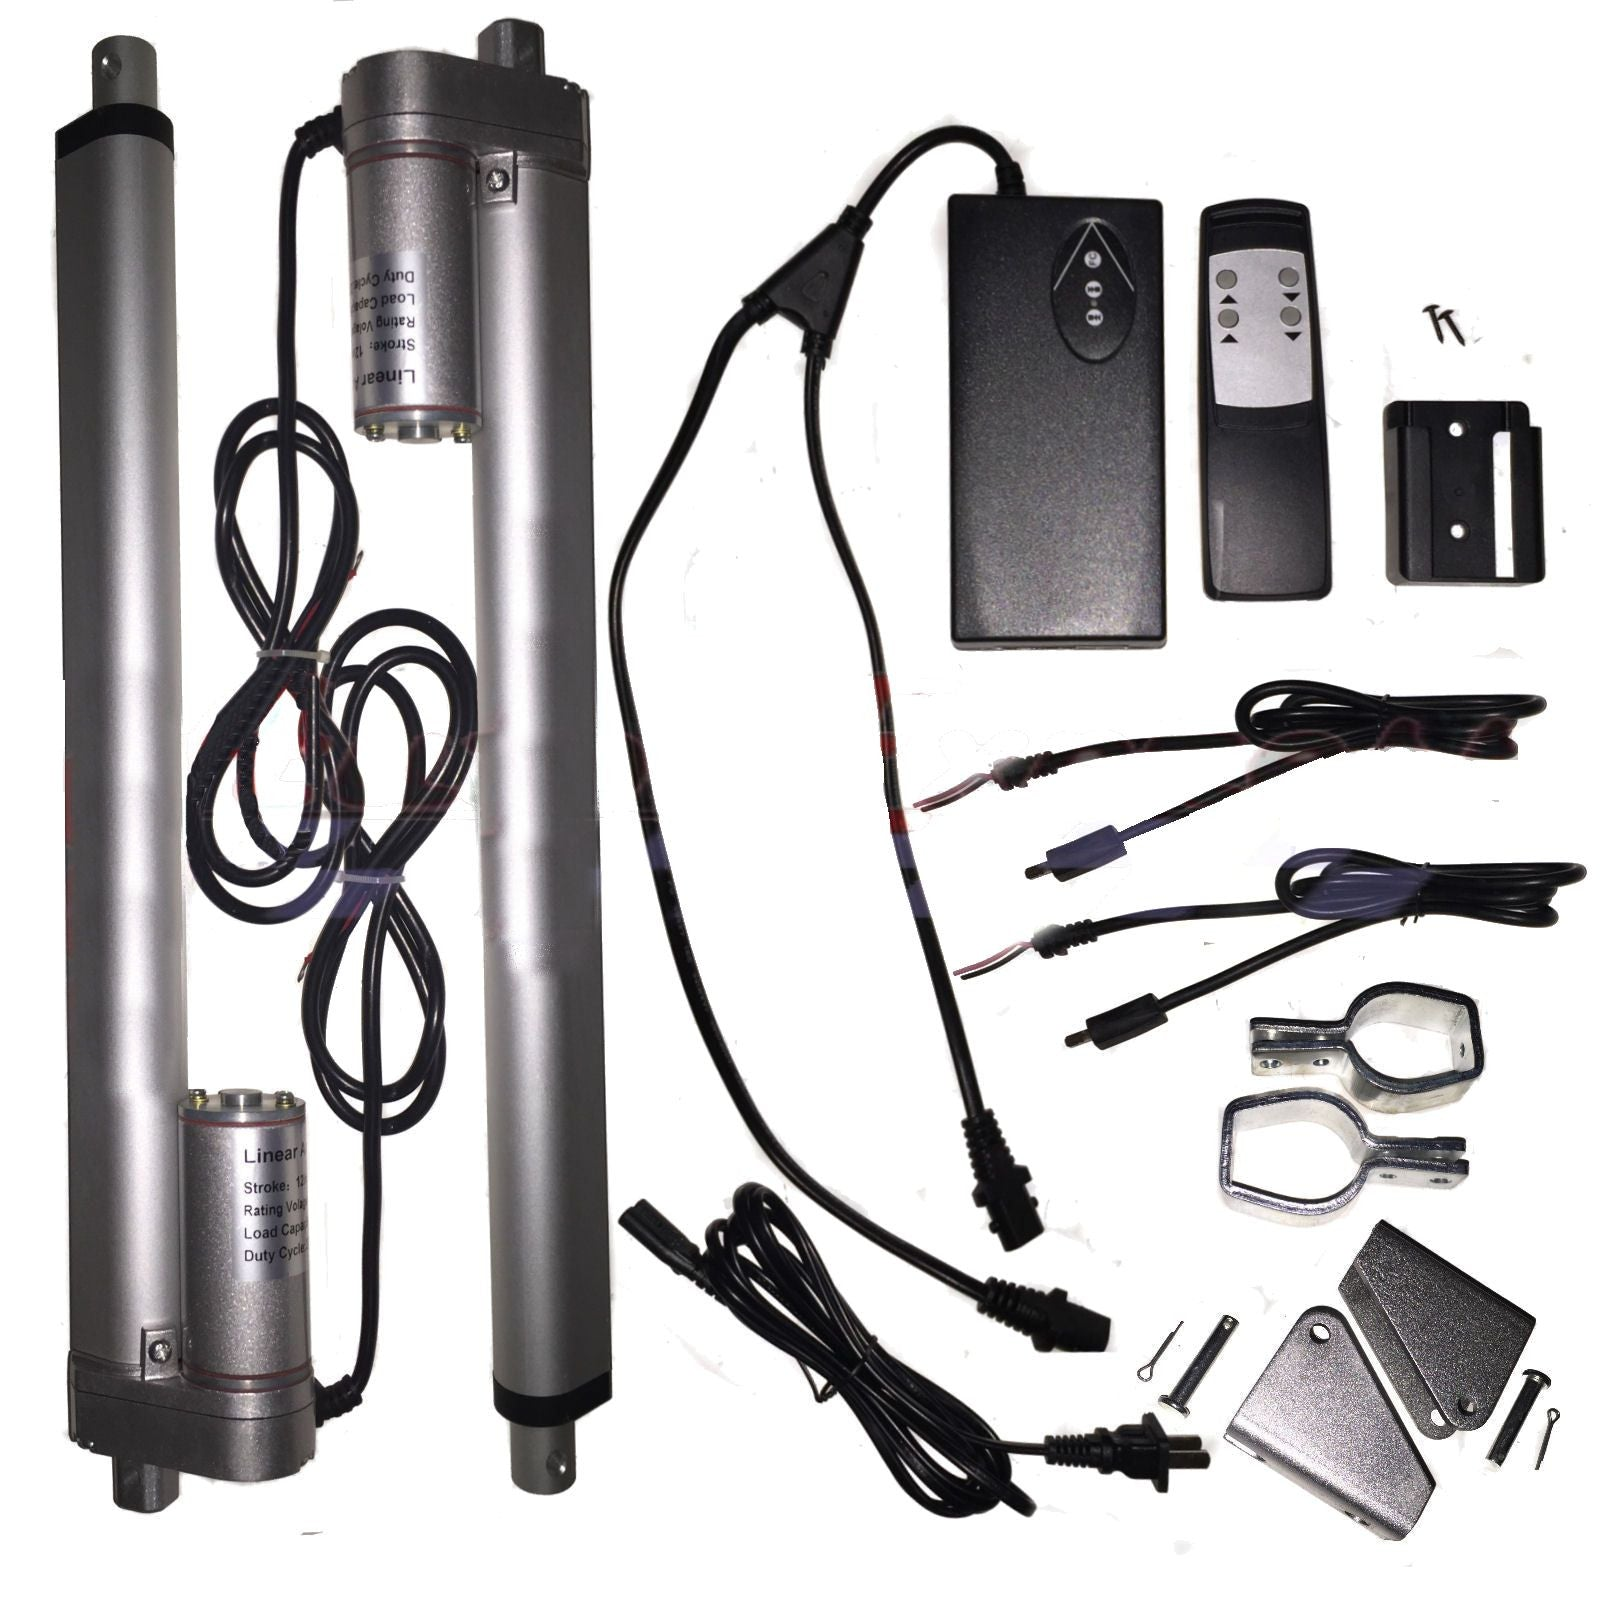 "2 Linear Actuators 18"" inch Stroke 12V 110V Power Supply With Remote Bracket Set - AE-Power"